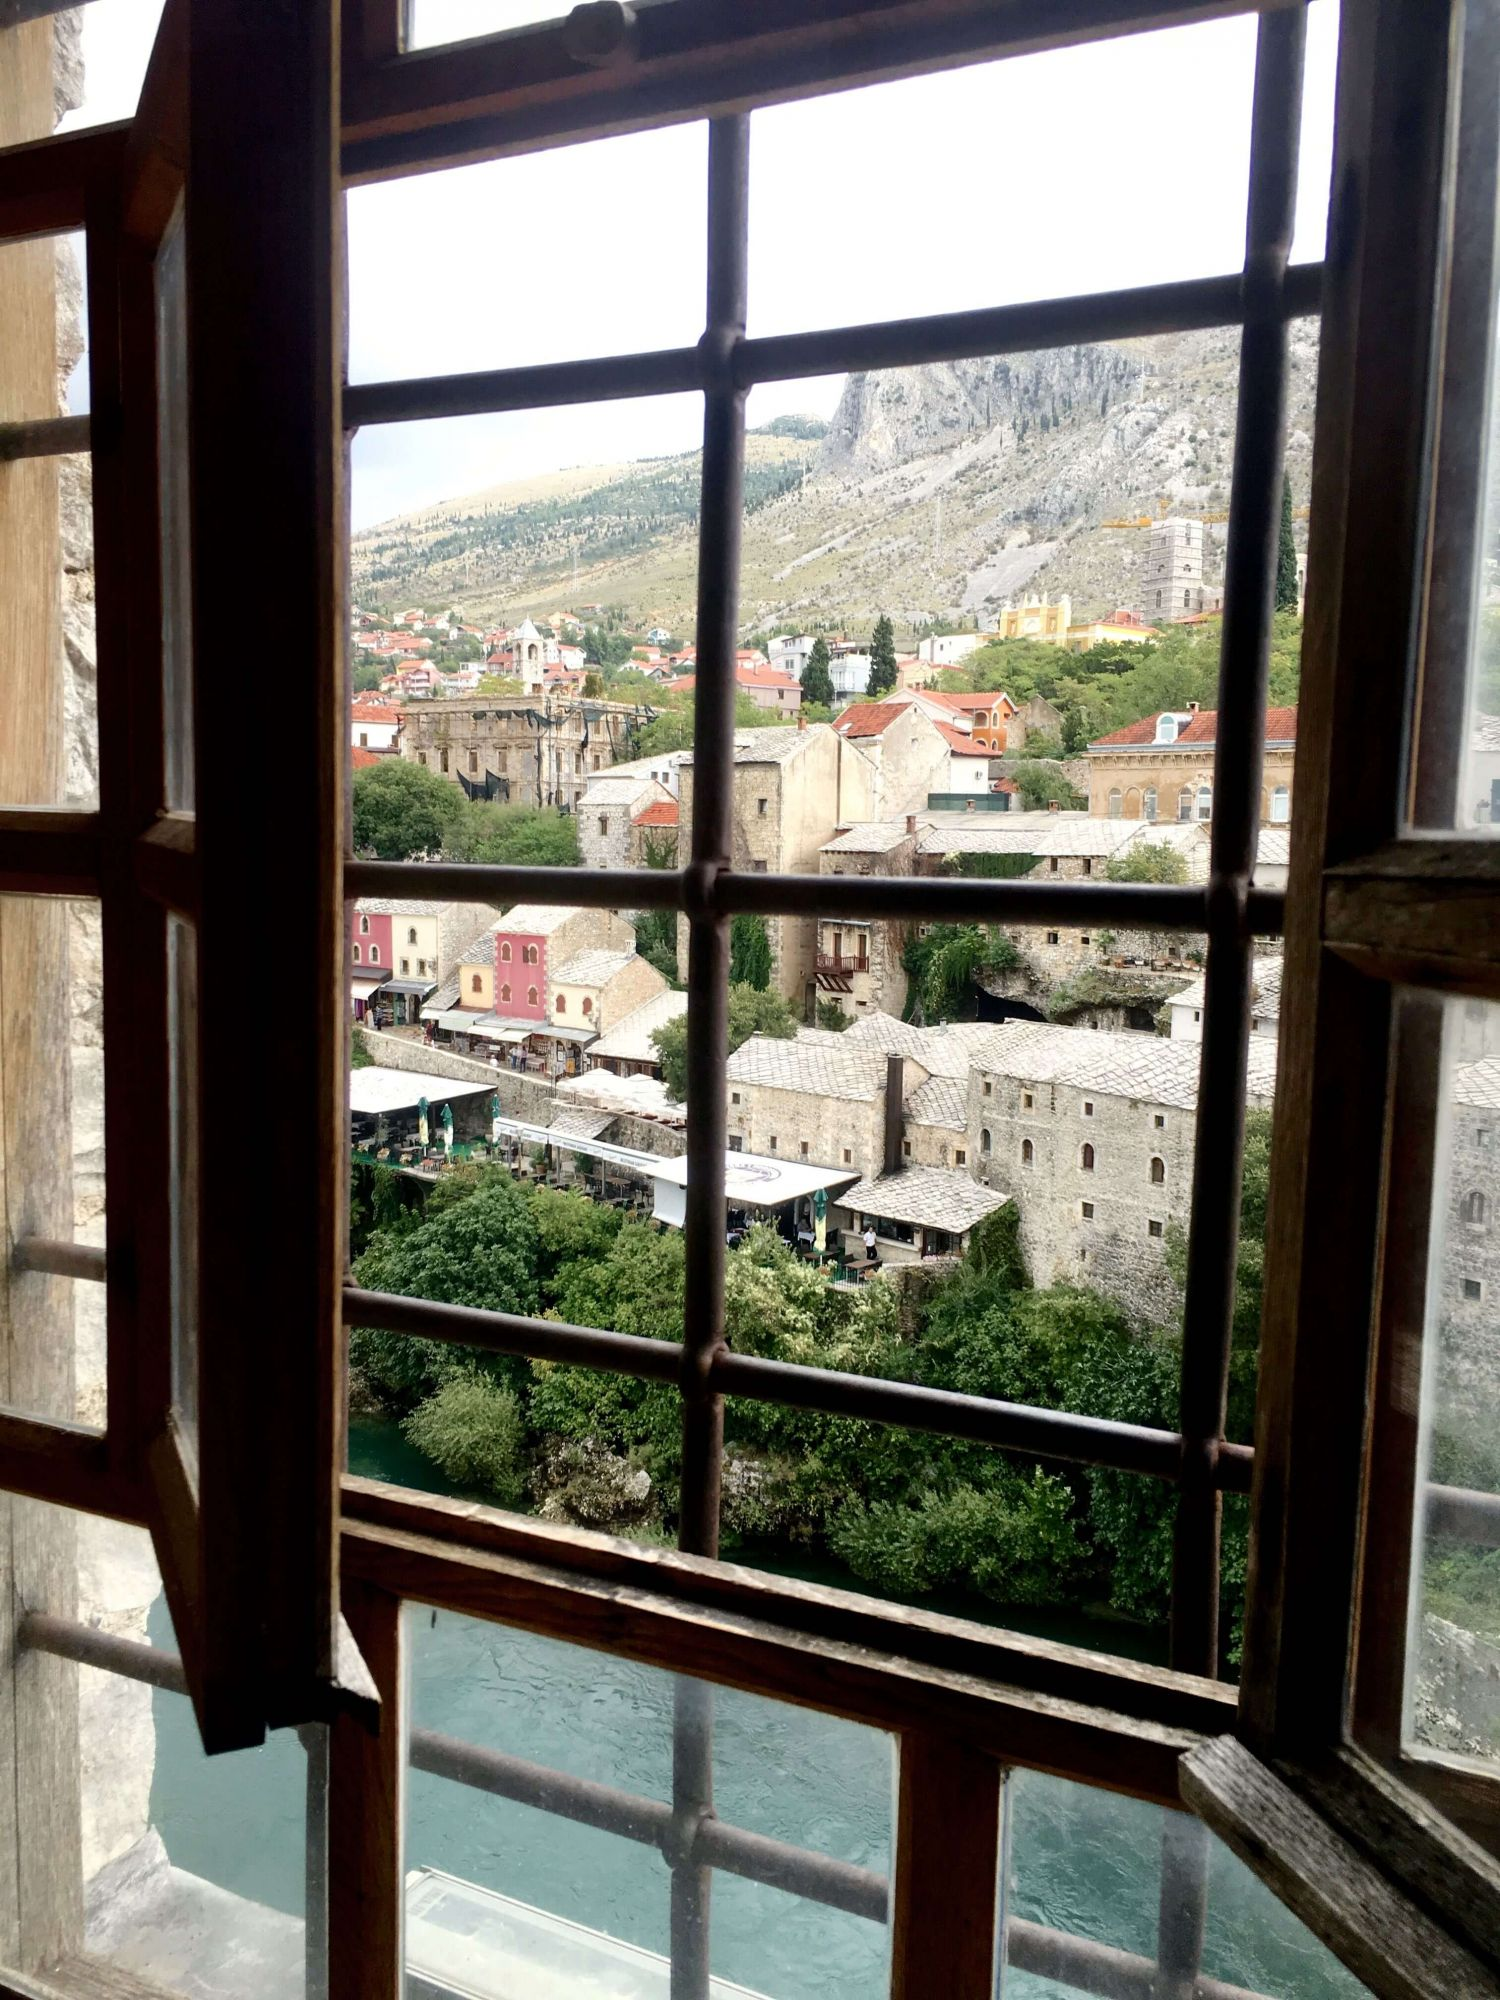 24 Hours in Mostar, Bosnia & Herzegovina Travel Itinerary